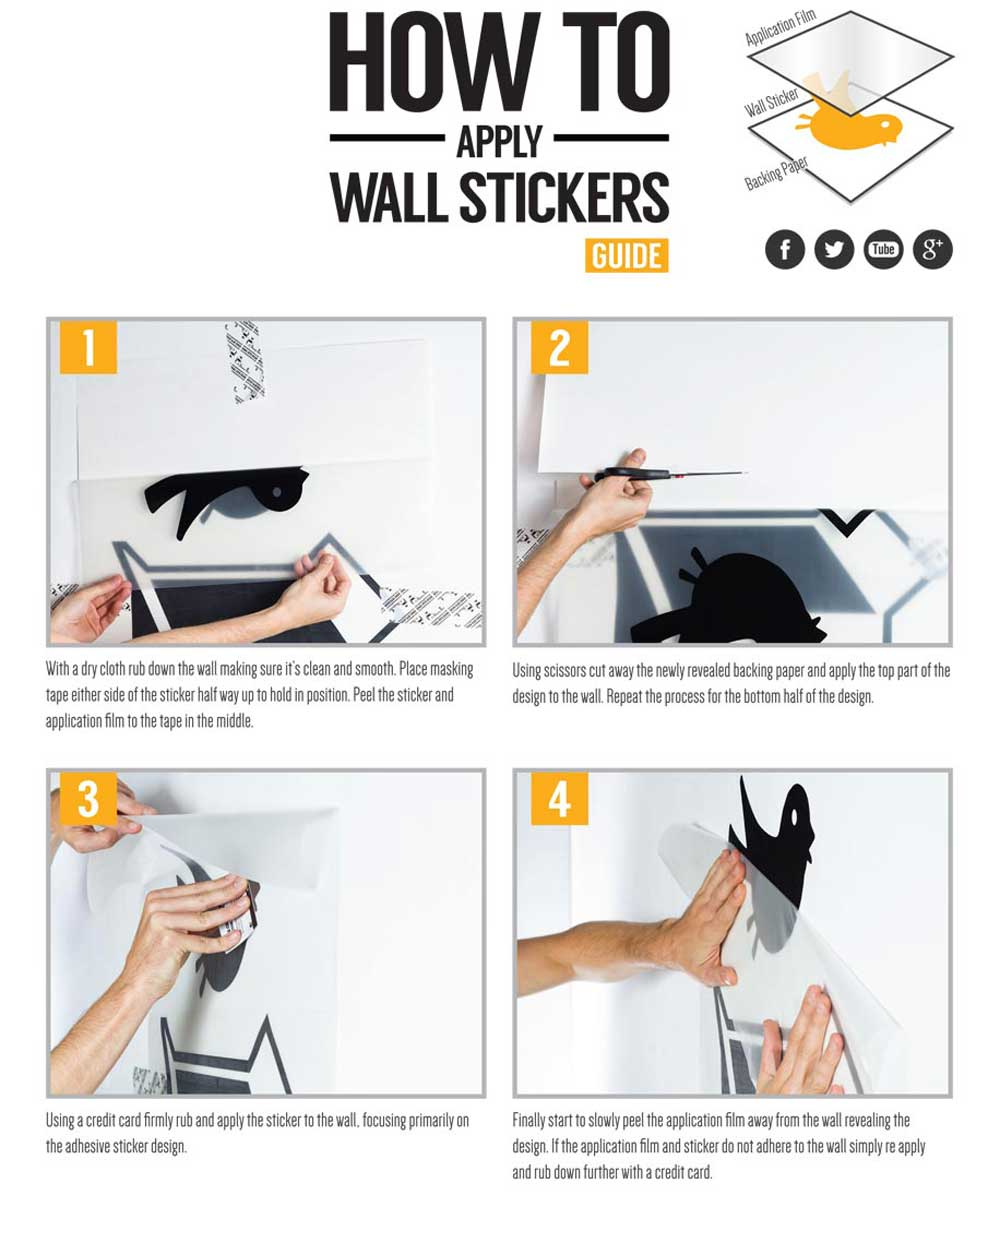 How To Install Wall Decals Wall Stickers Application Instructions - Instructions on how to put up a wall sticker